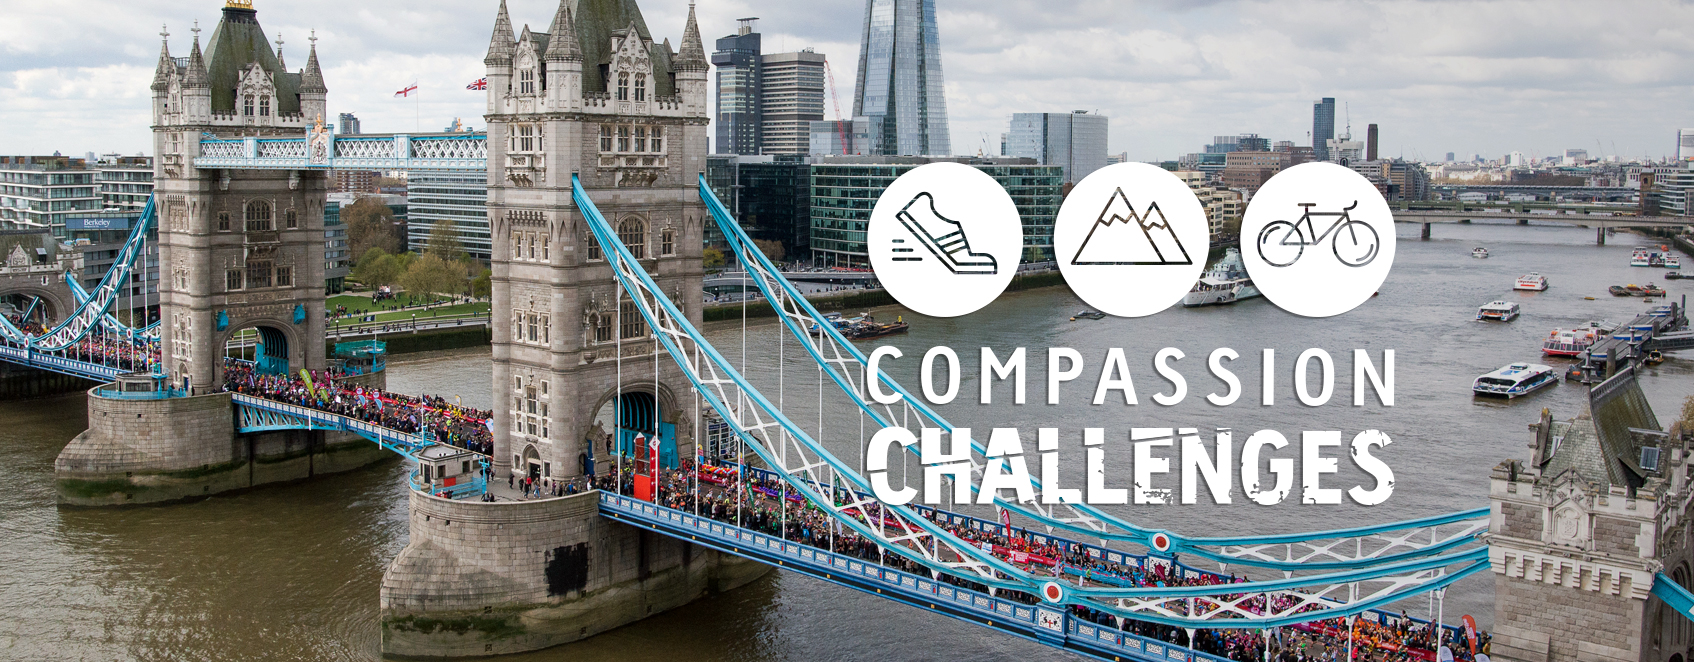 Challenges - London Marathon